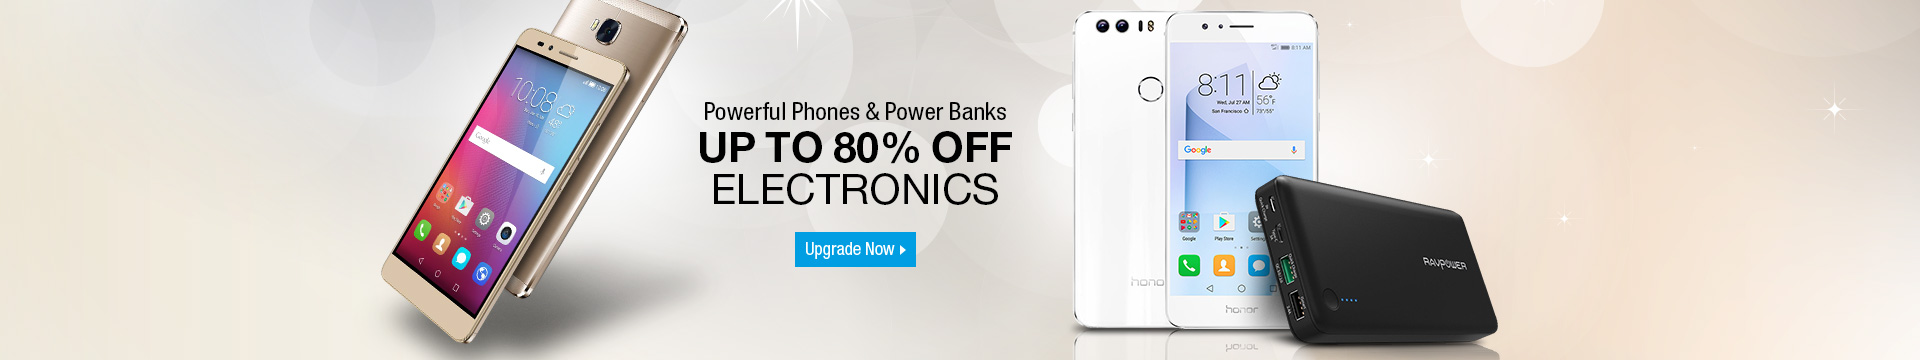 Powerful Phones & Power Banks